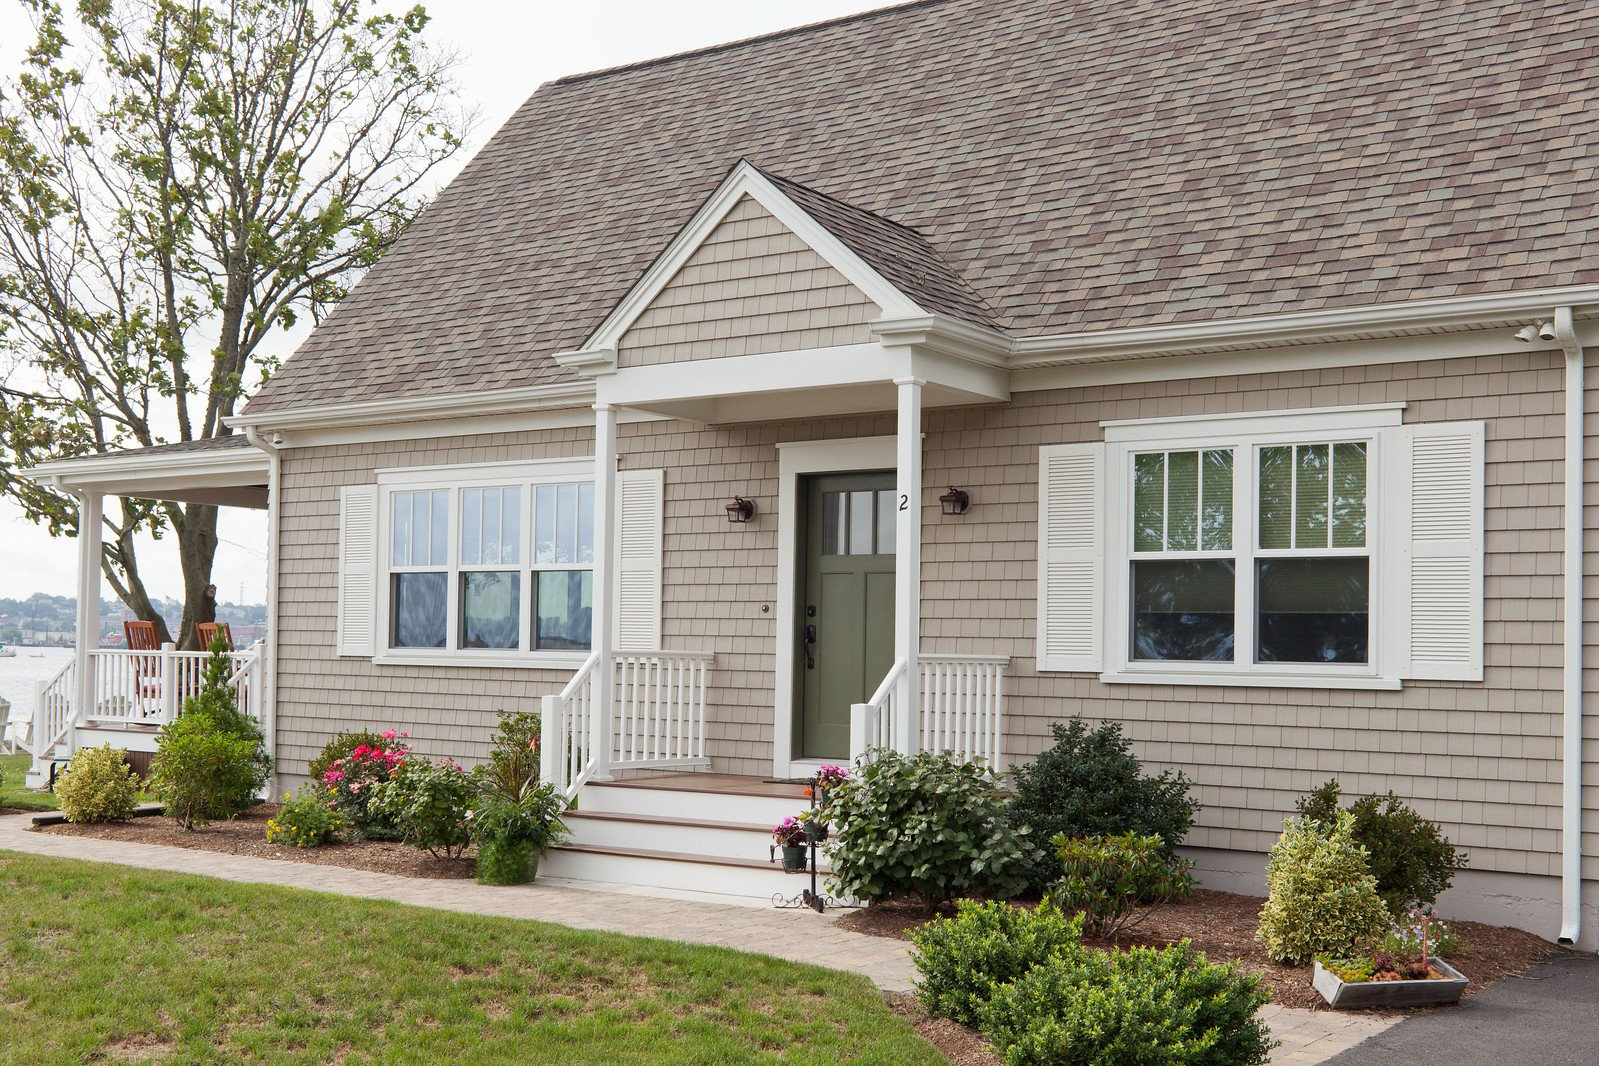 The Best Roofing, Siding, and Window Options for Your Waterfront Home